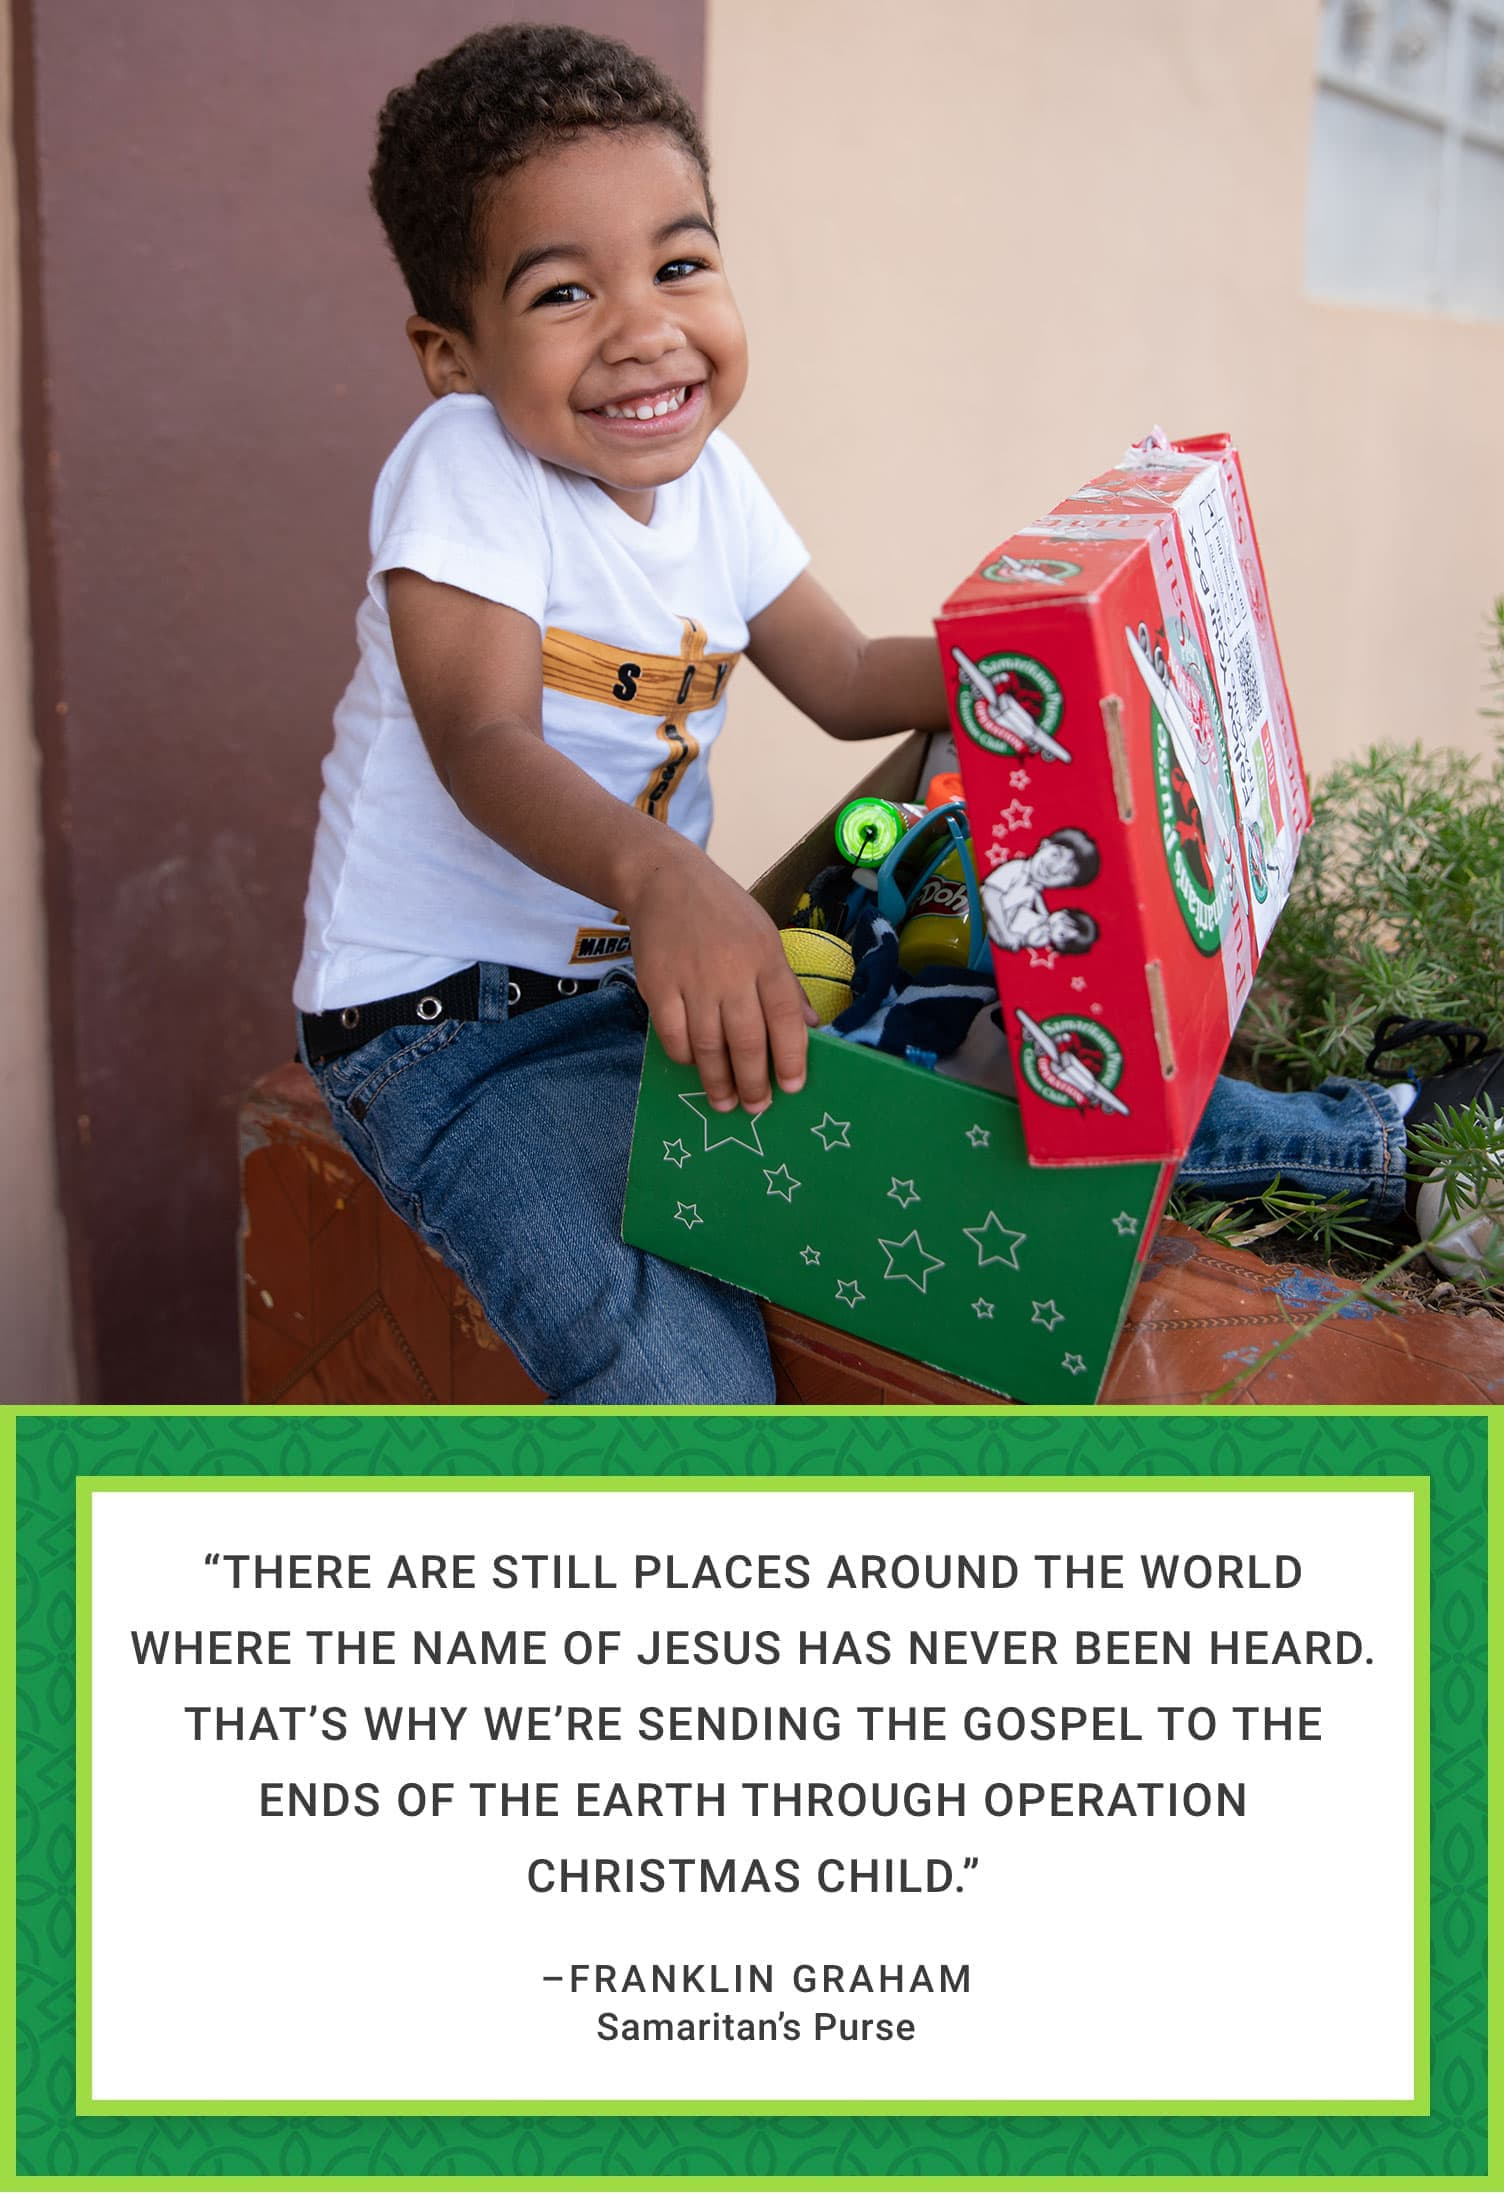 """There are still places around the world where the Name of Jesus has never been heard. That's why we're sending the Gospel to the ends of the earth through Operation Christmas Child.""—Franklin Graham, President, Samaritan's Purse"